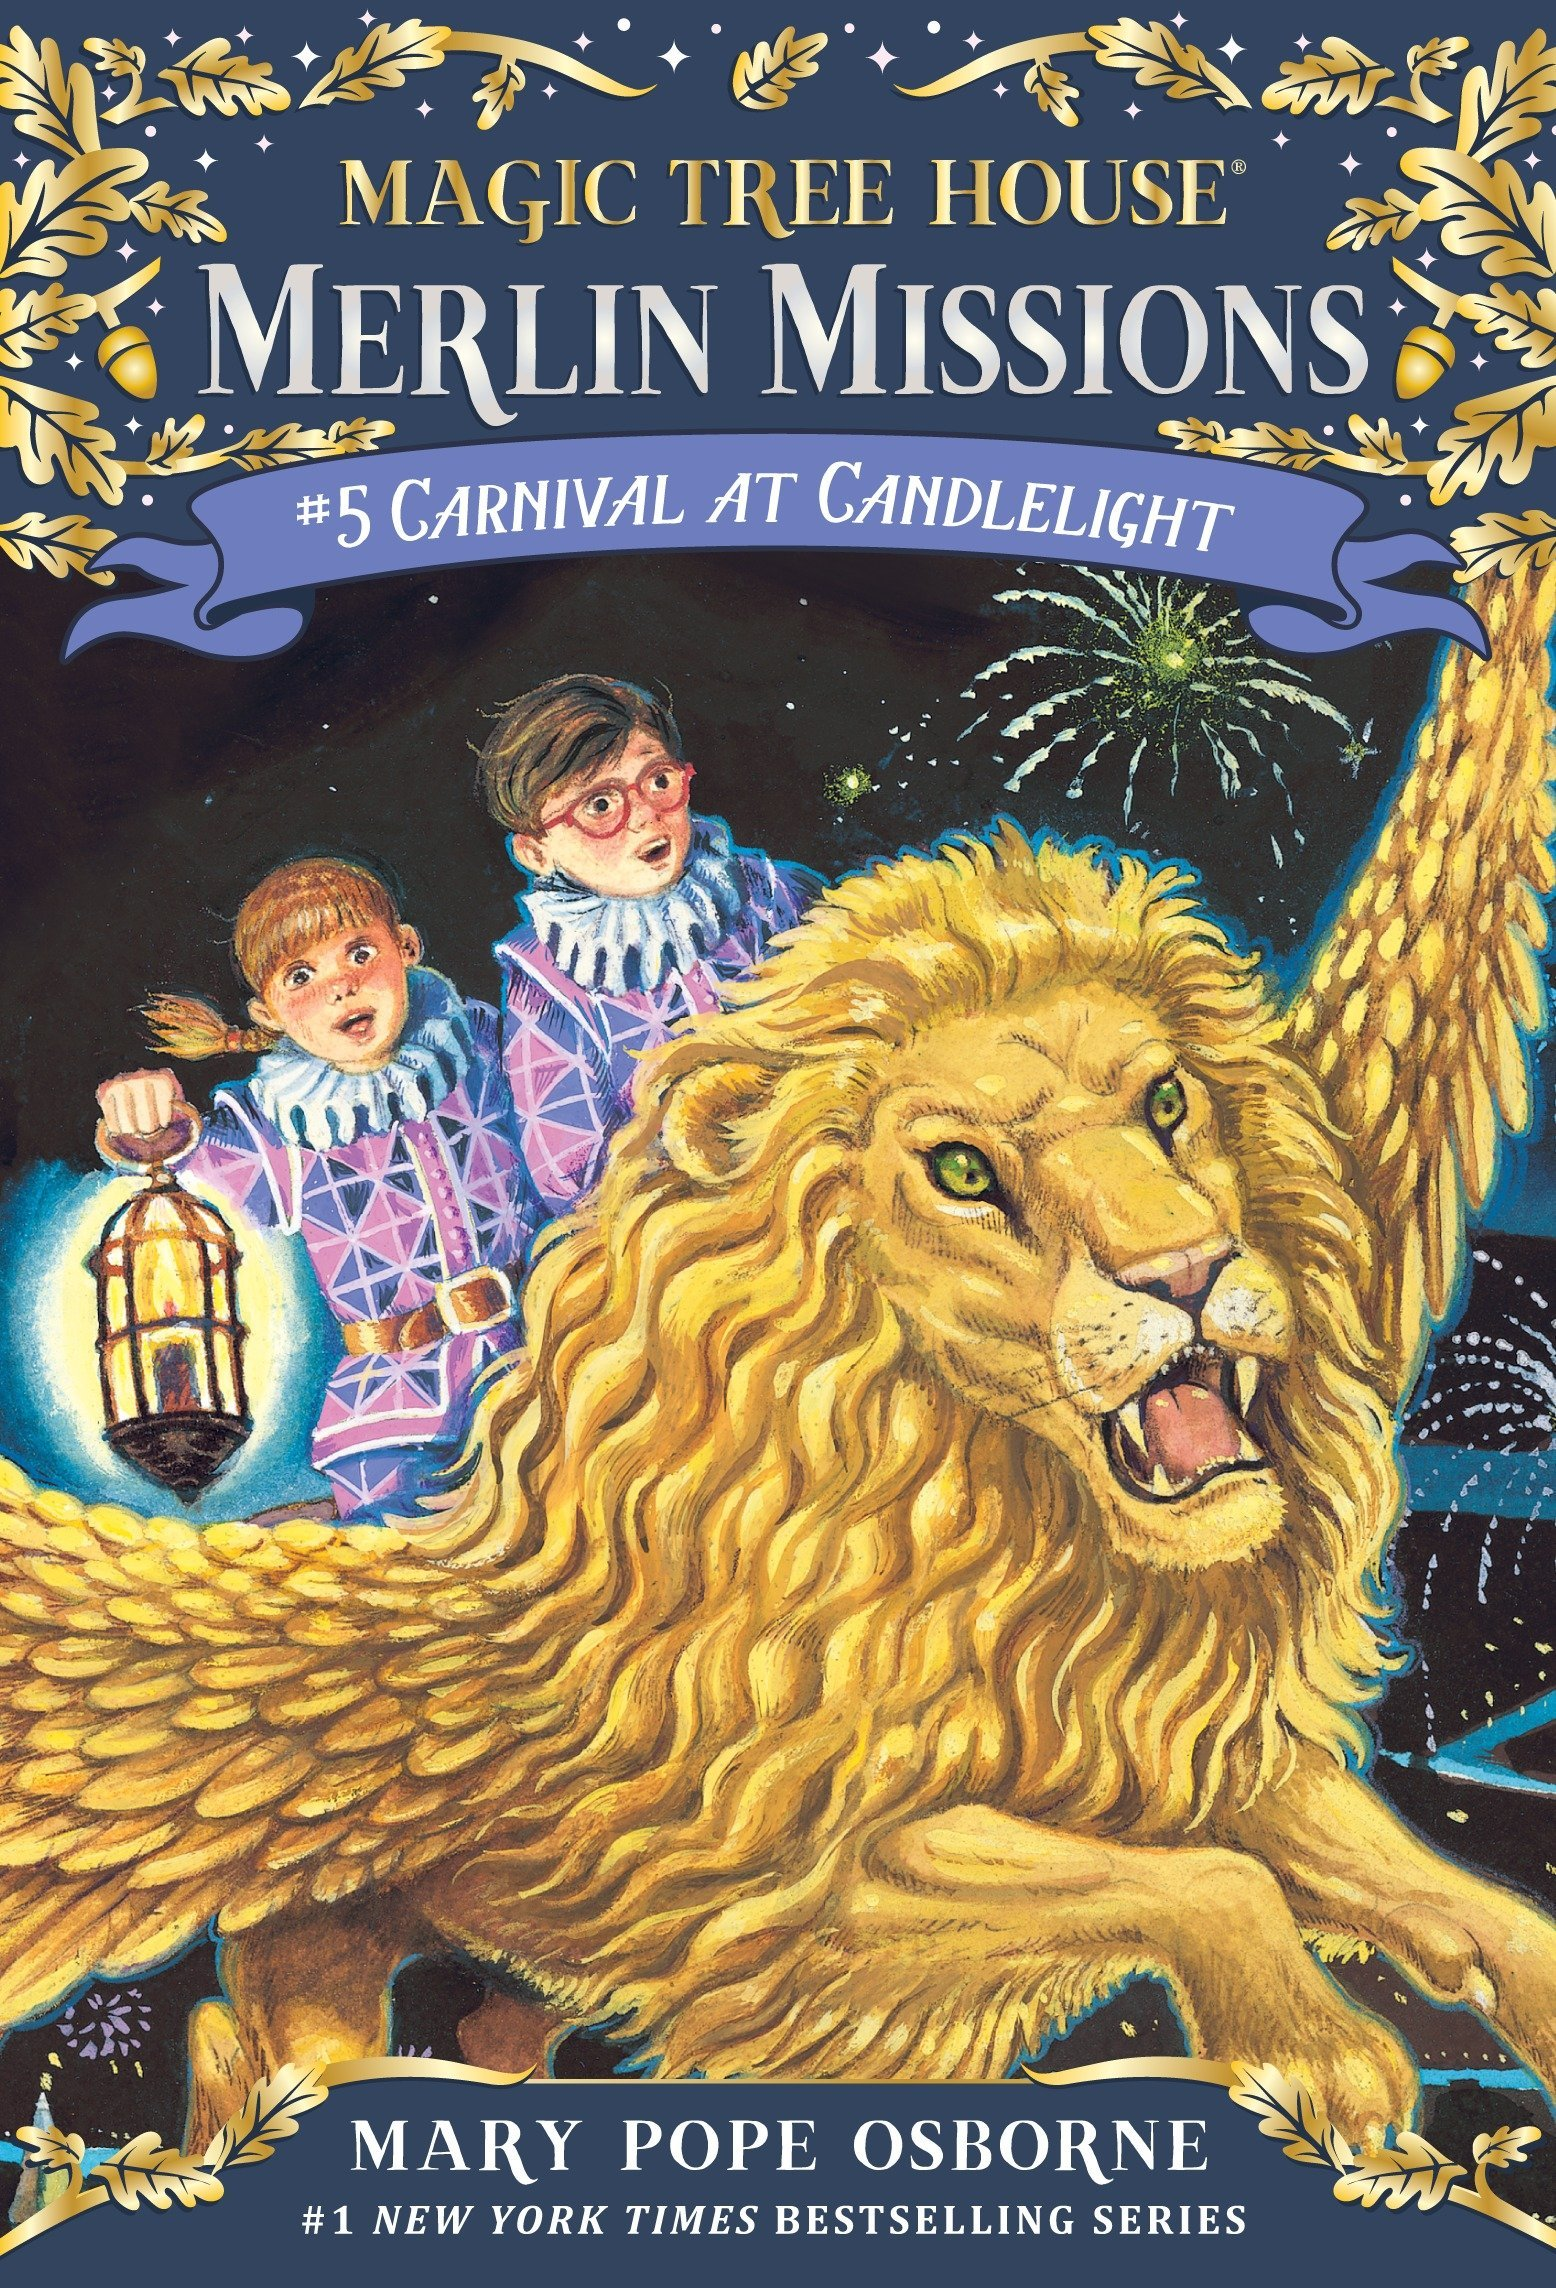 """Magic Tree House Club """"Merlin Missions"""": Carnival at Candlelight"""